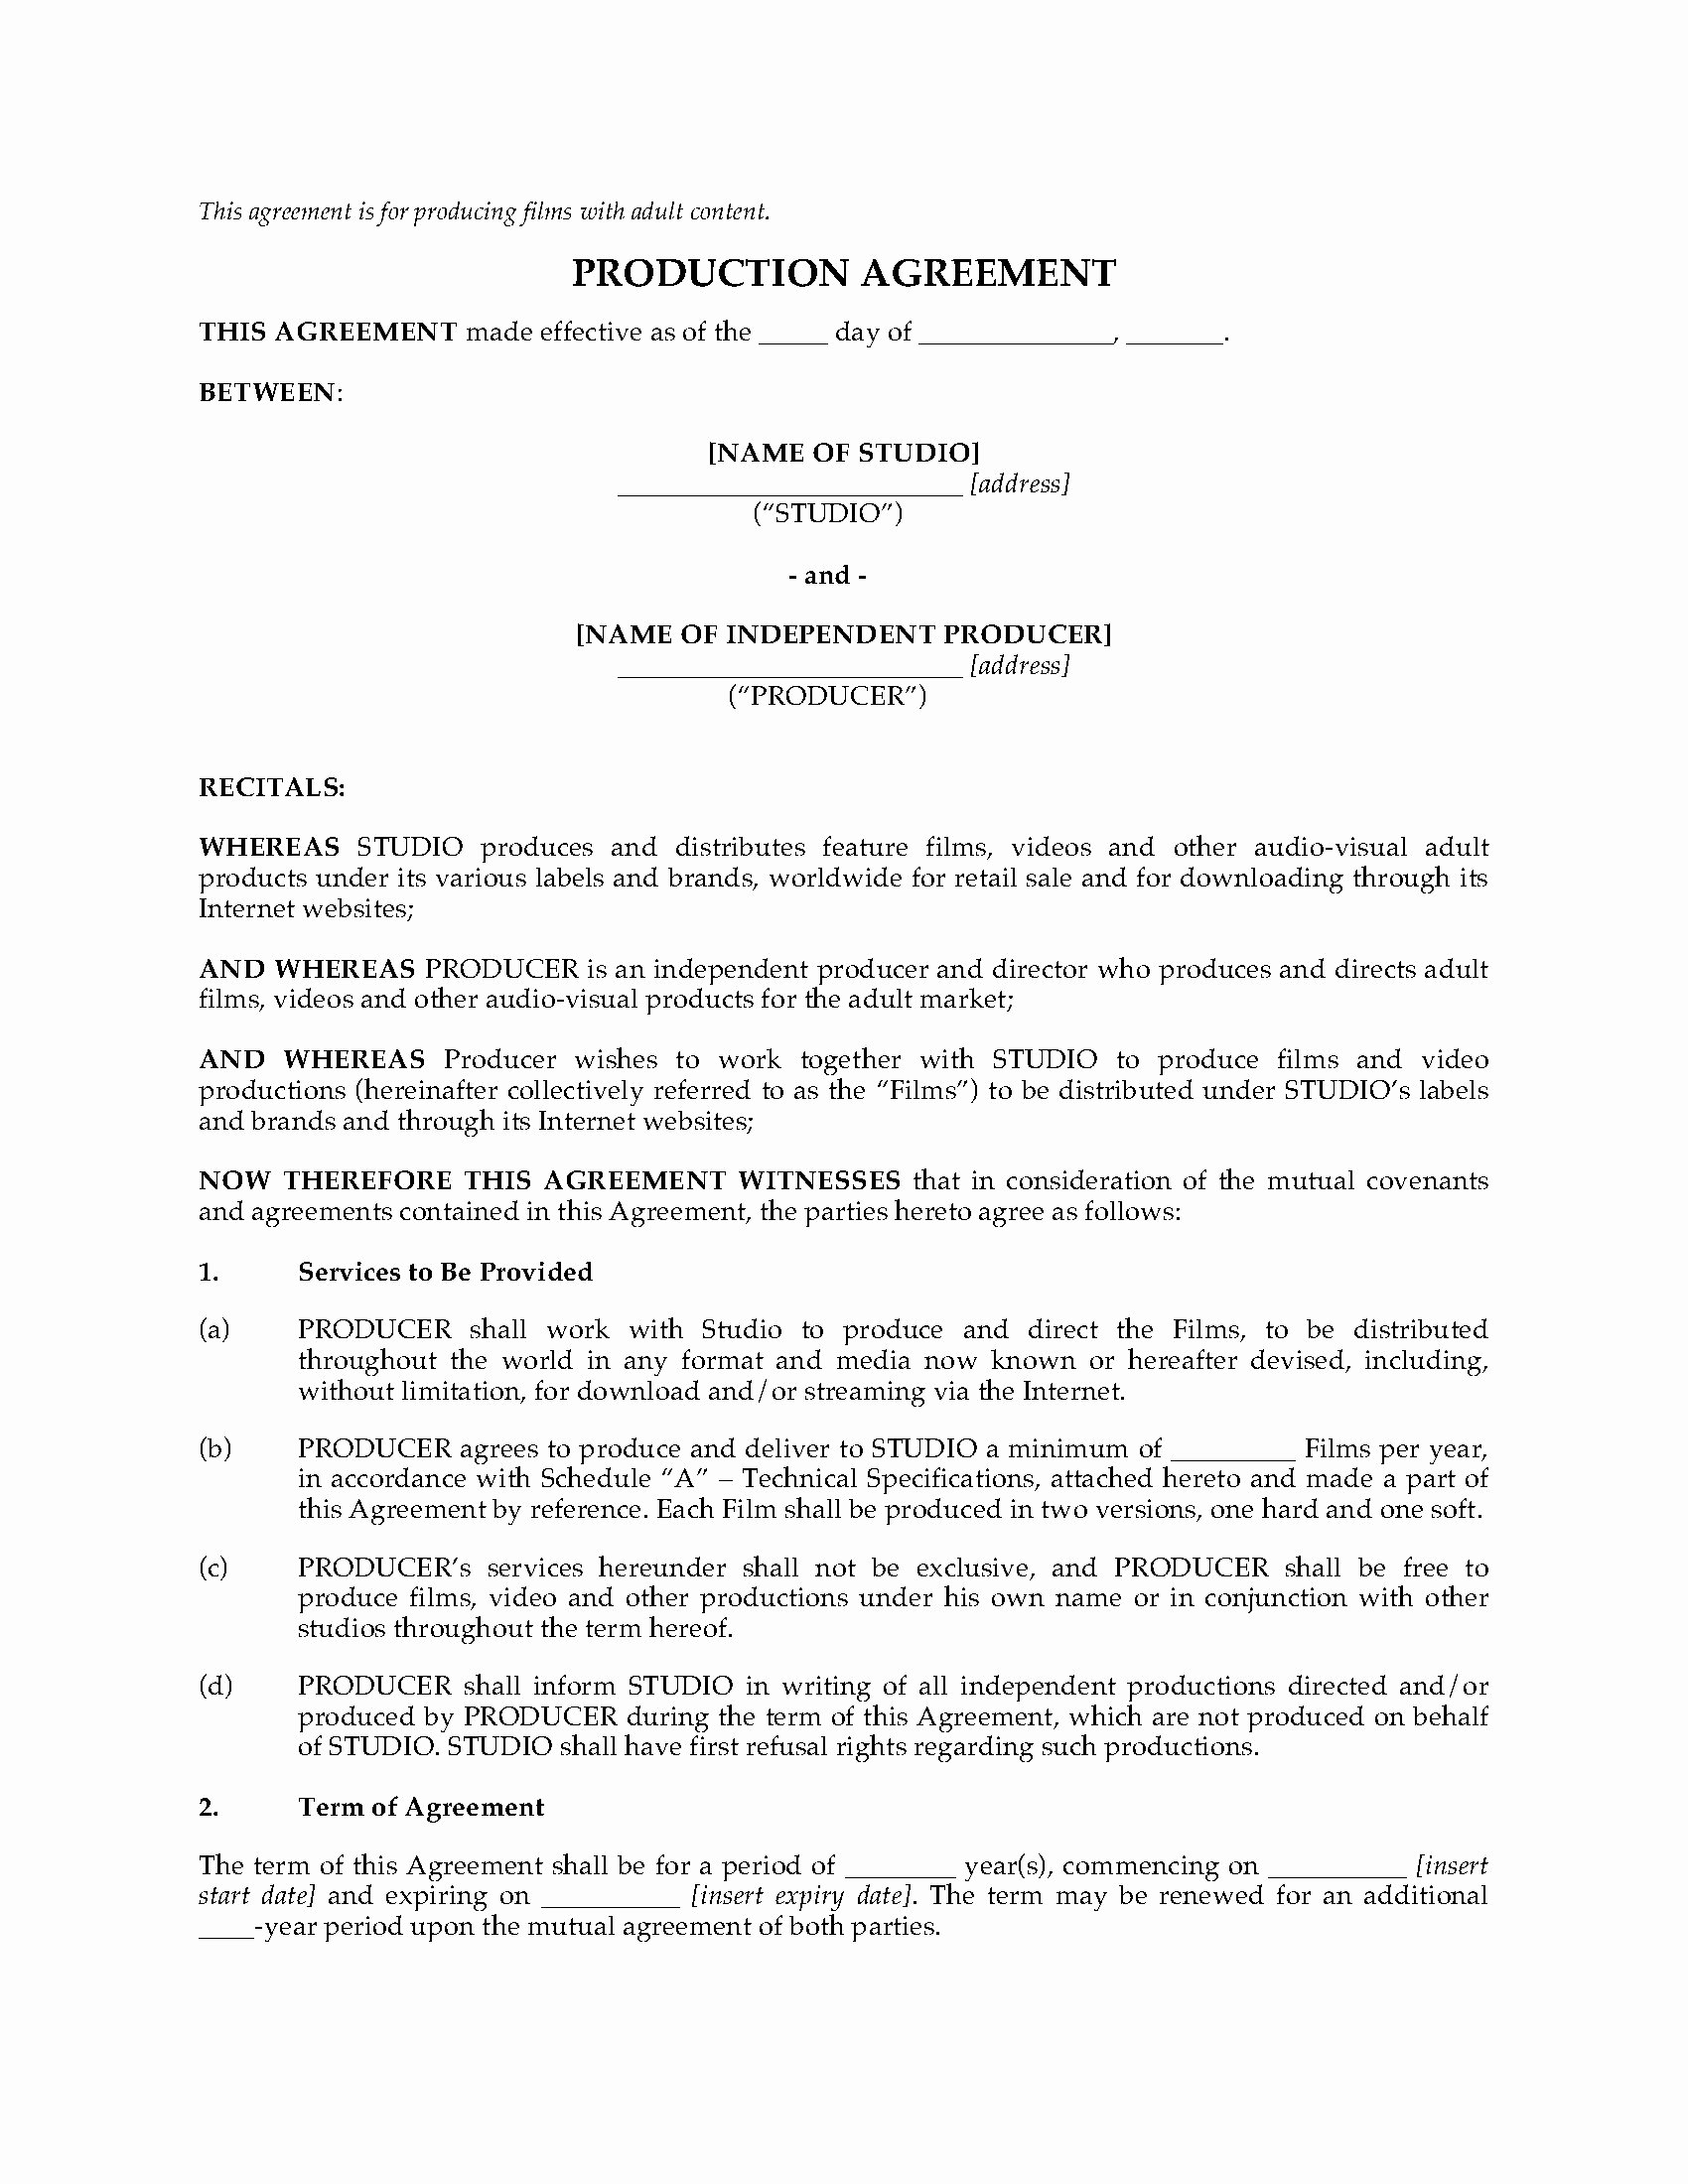 Film Producer Agreement Template Unique Adult Production Agreement